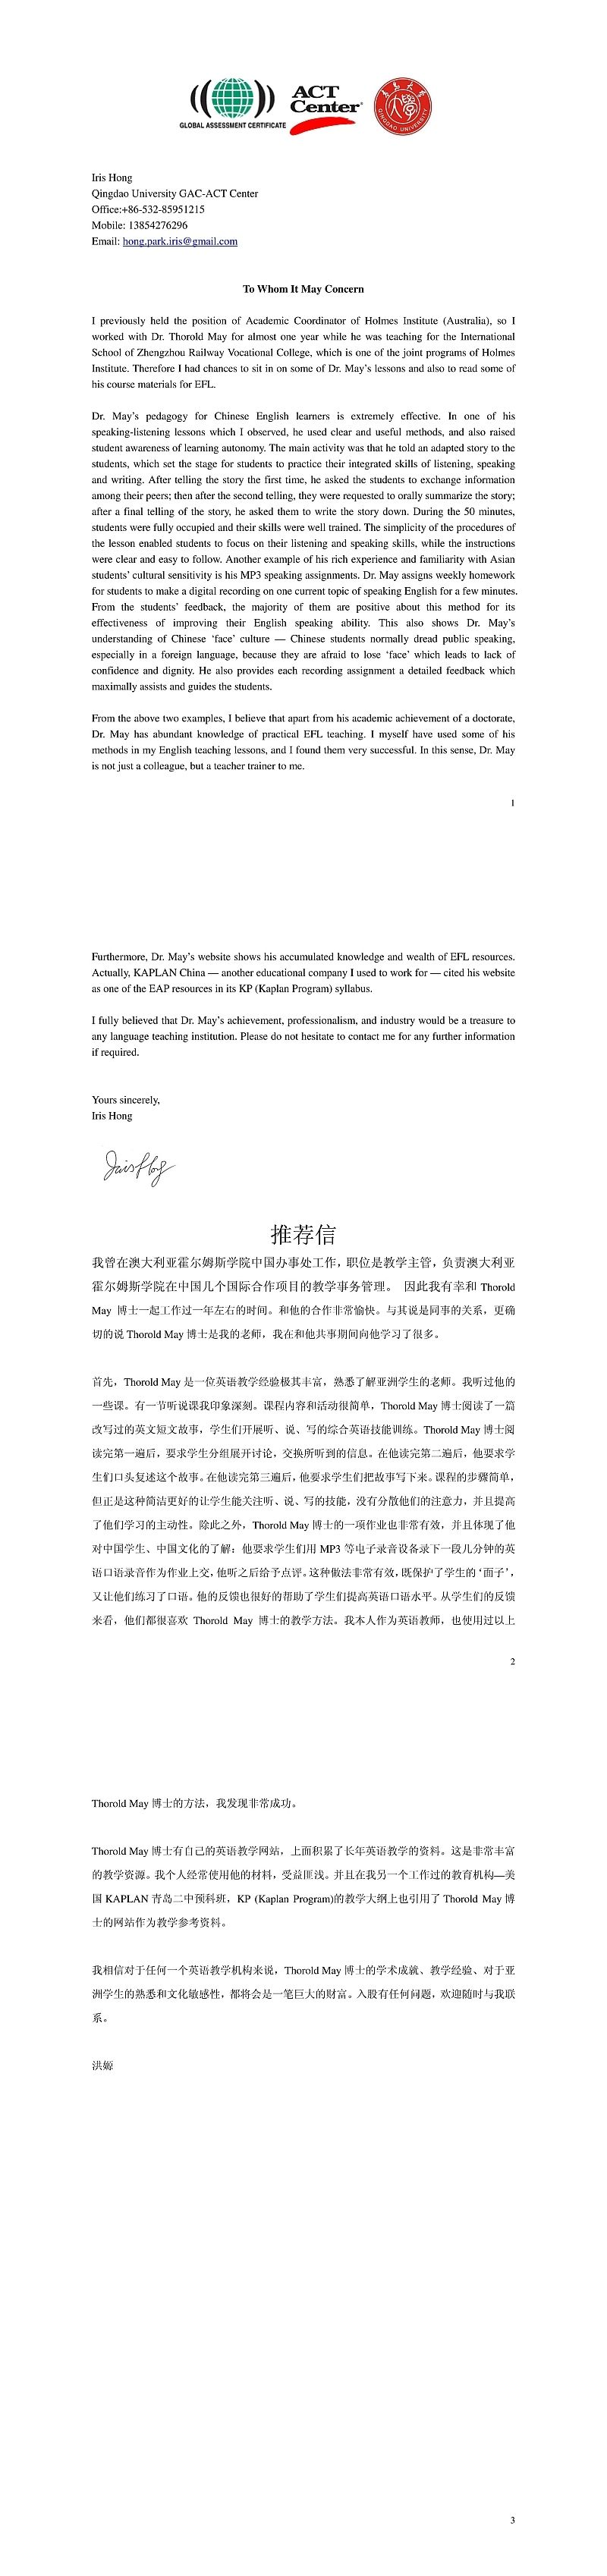 Sample letter of recommendation for doctoral program in education letter of recommendation civil engineer tomadaretodonate documents and site map for thor may docsiteml spiritdancerdesigns